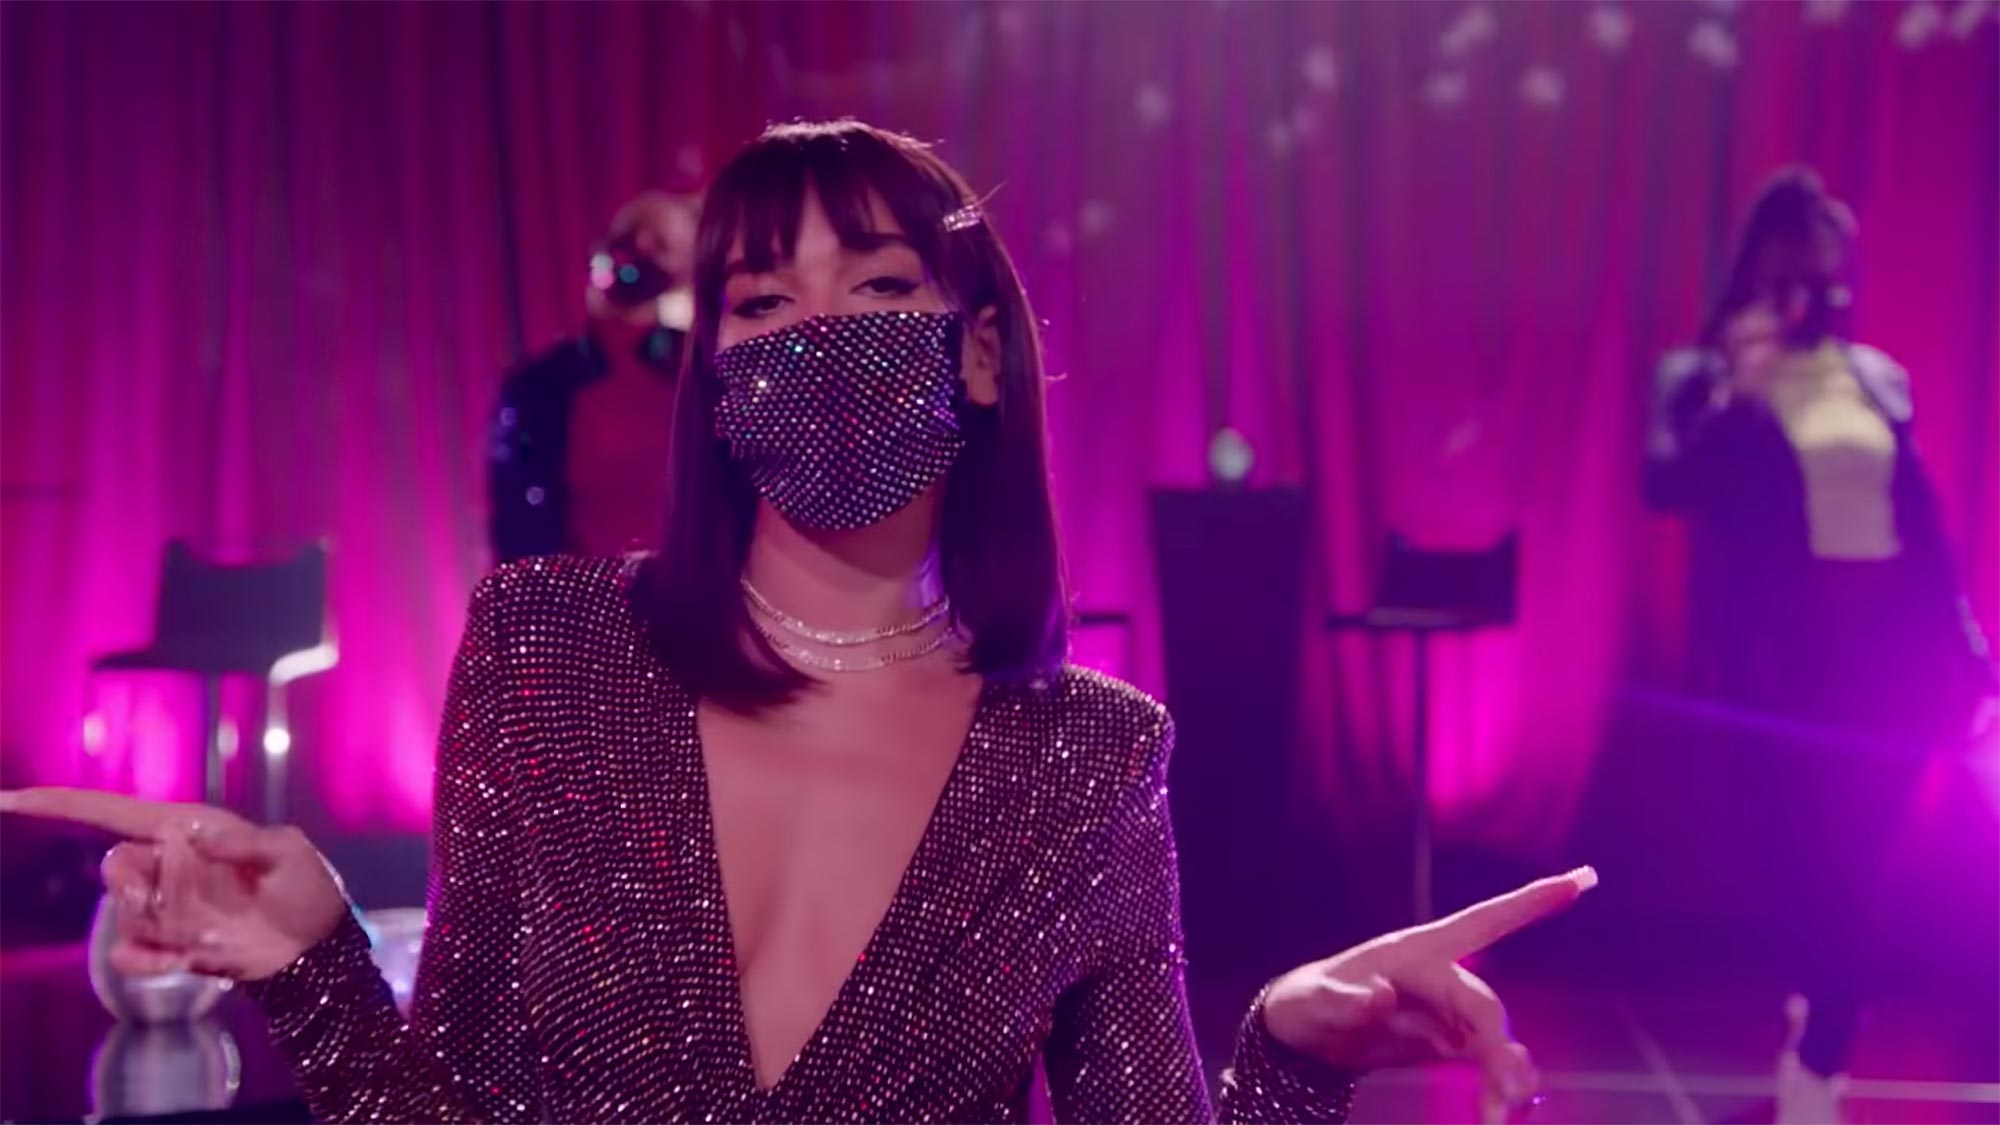 DUA LIPA Has 'New Rules' For COVID Dating- The Late Late Show with James Corden